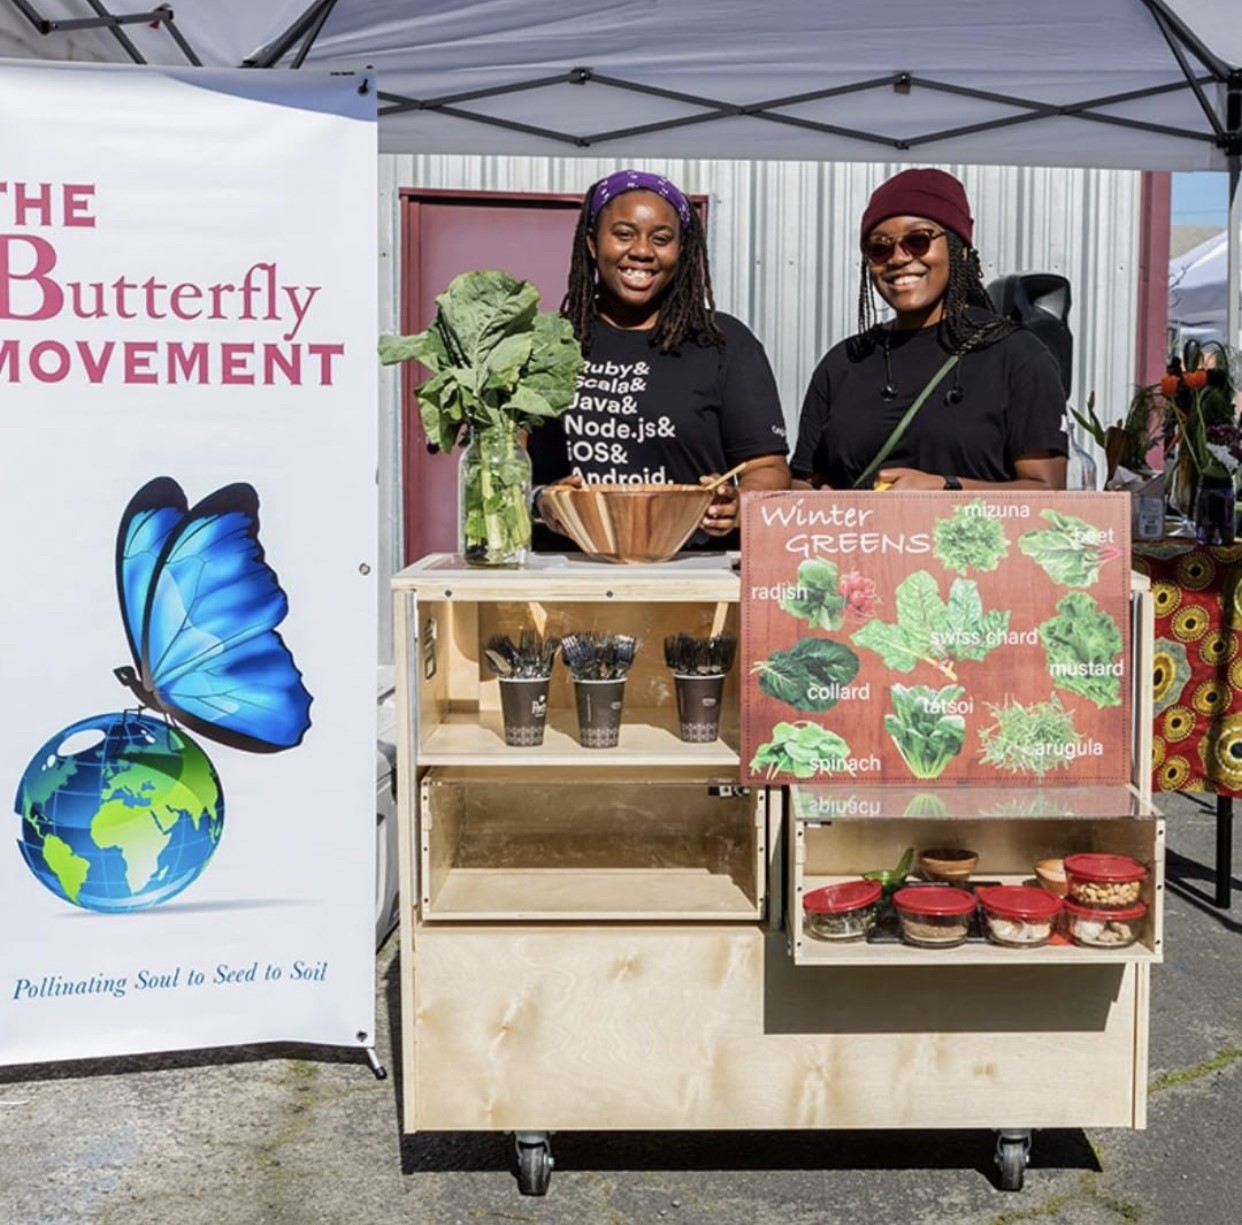 The Butterfly Movement at the Health Summit